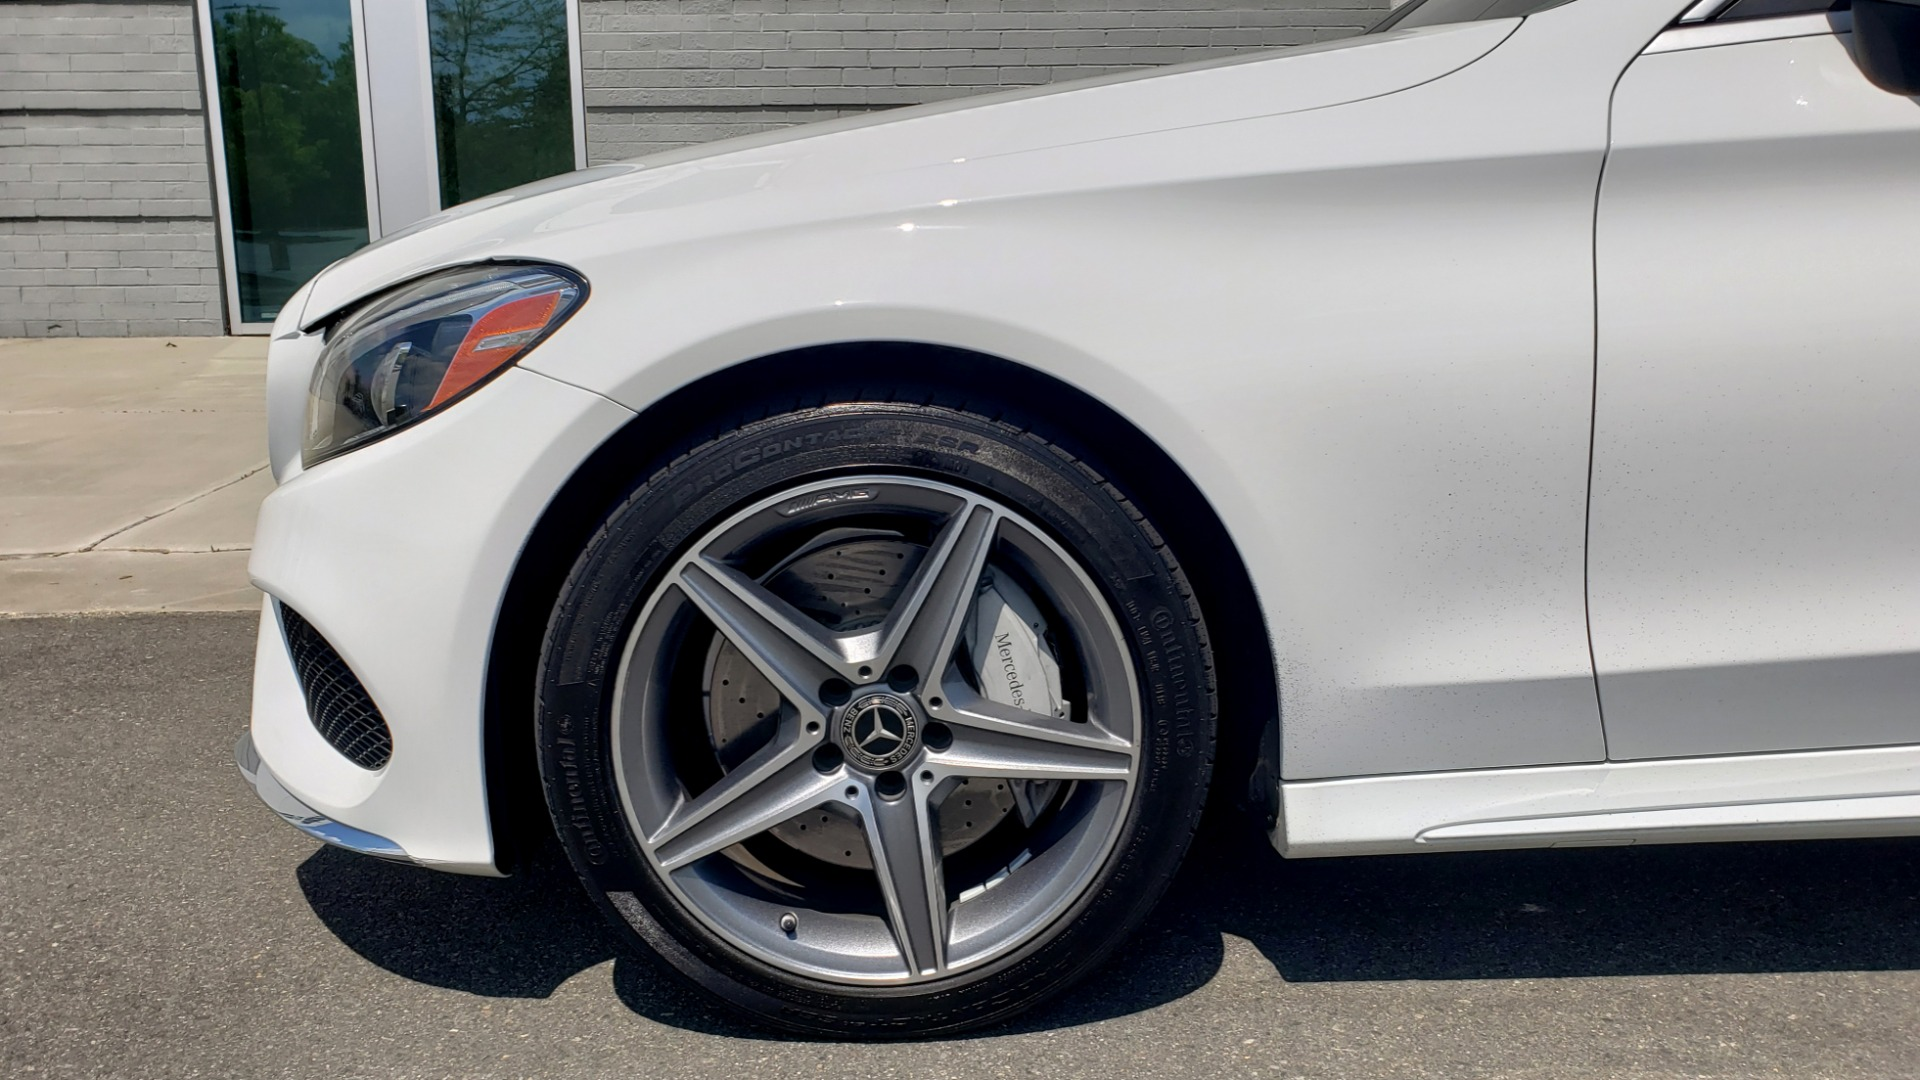 Used 2018 Mercedes-Benz C-CLASS C 300 CABRIOLET PREMIUM / AWD / BURMESTER SND / APPLE / REARVIEW for sale $44,995 at Formula Imports in Charlotte NC 28227 78